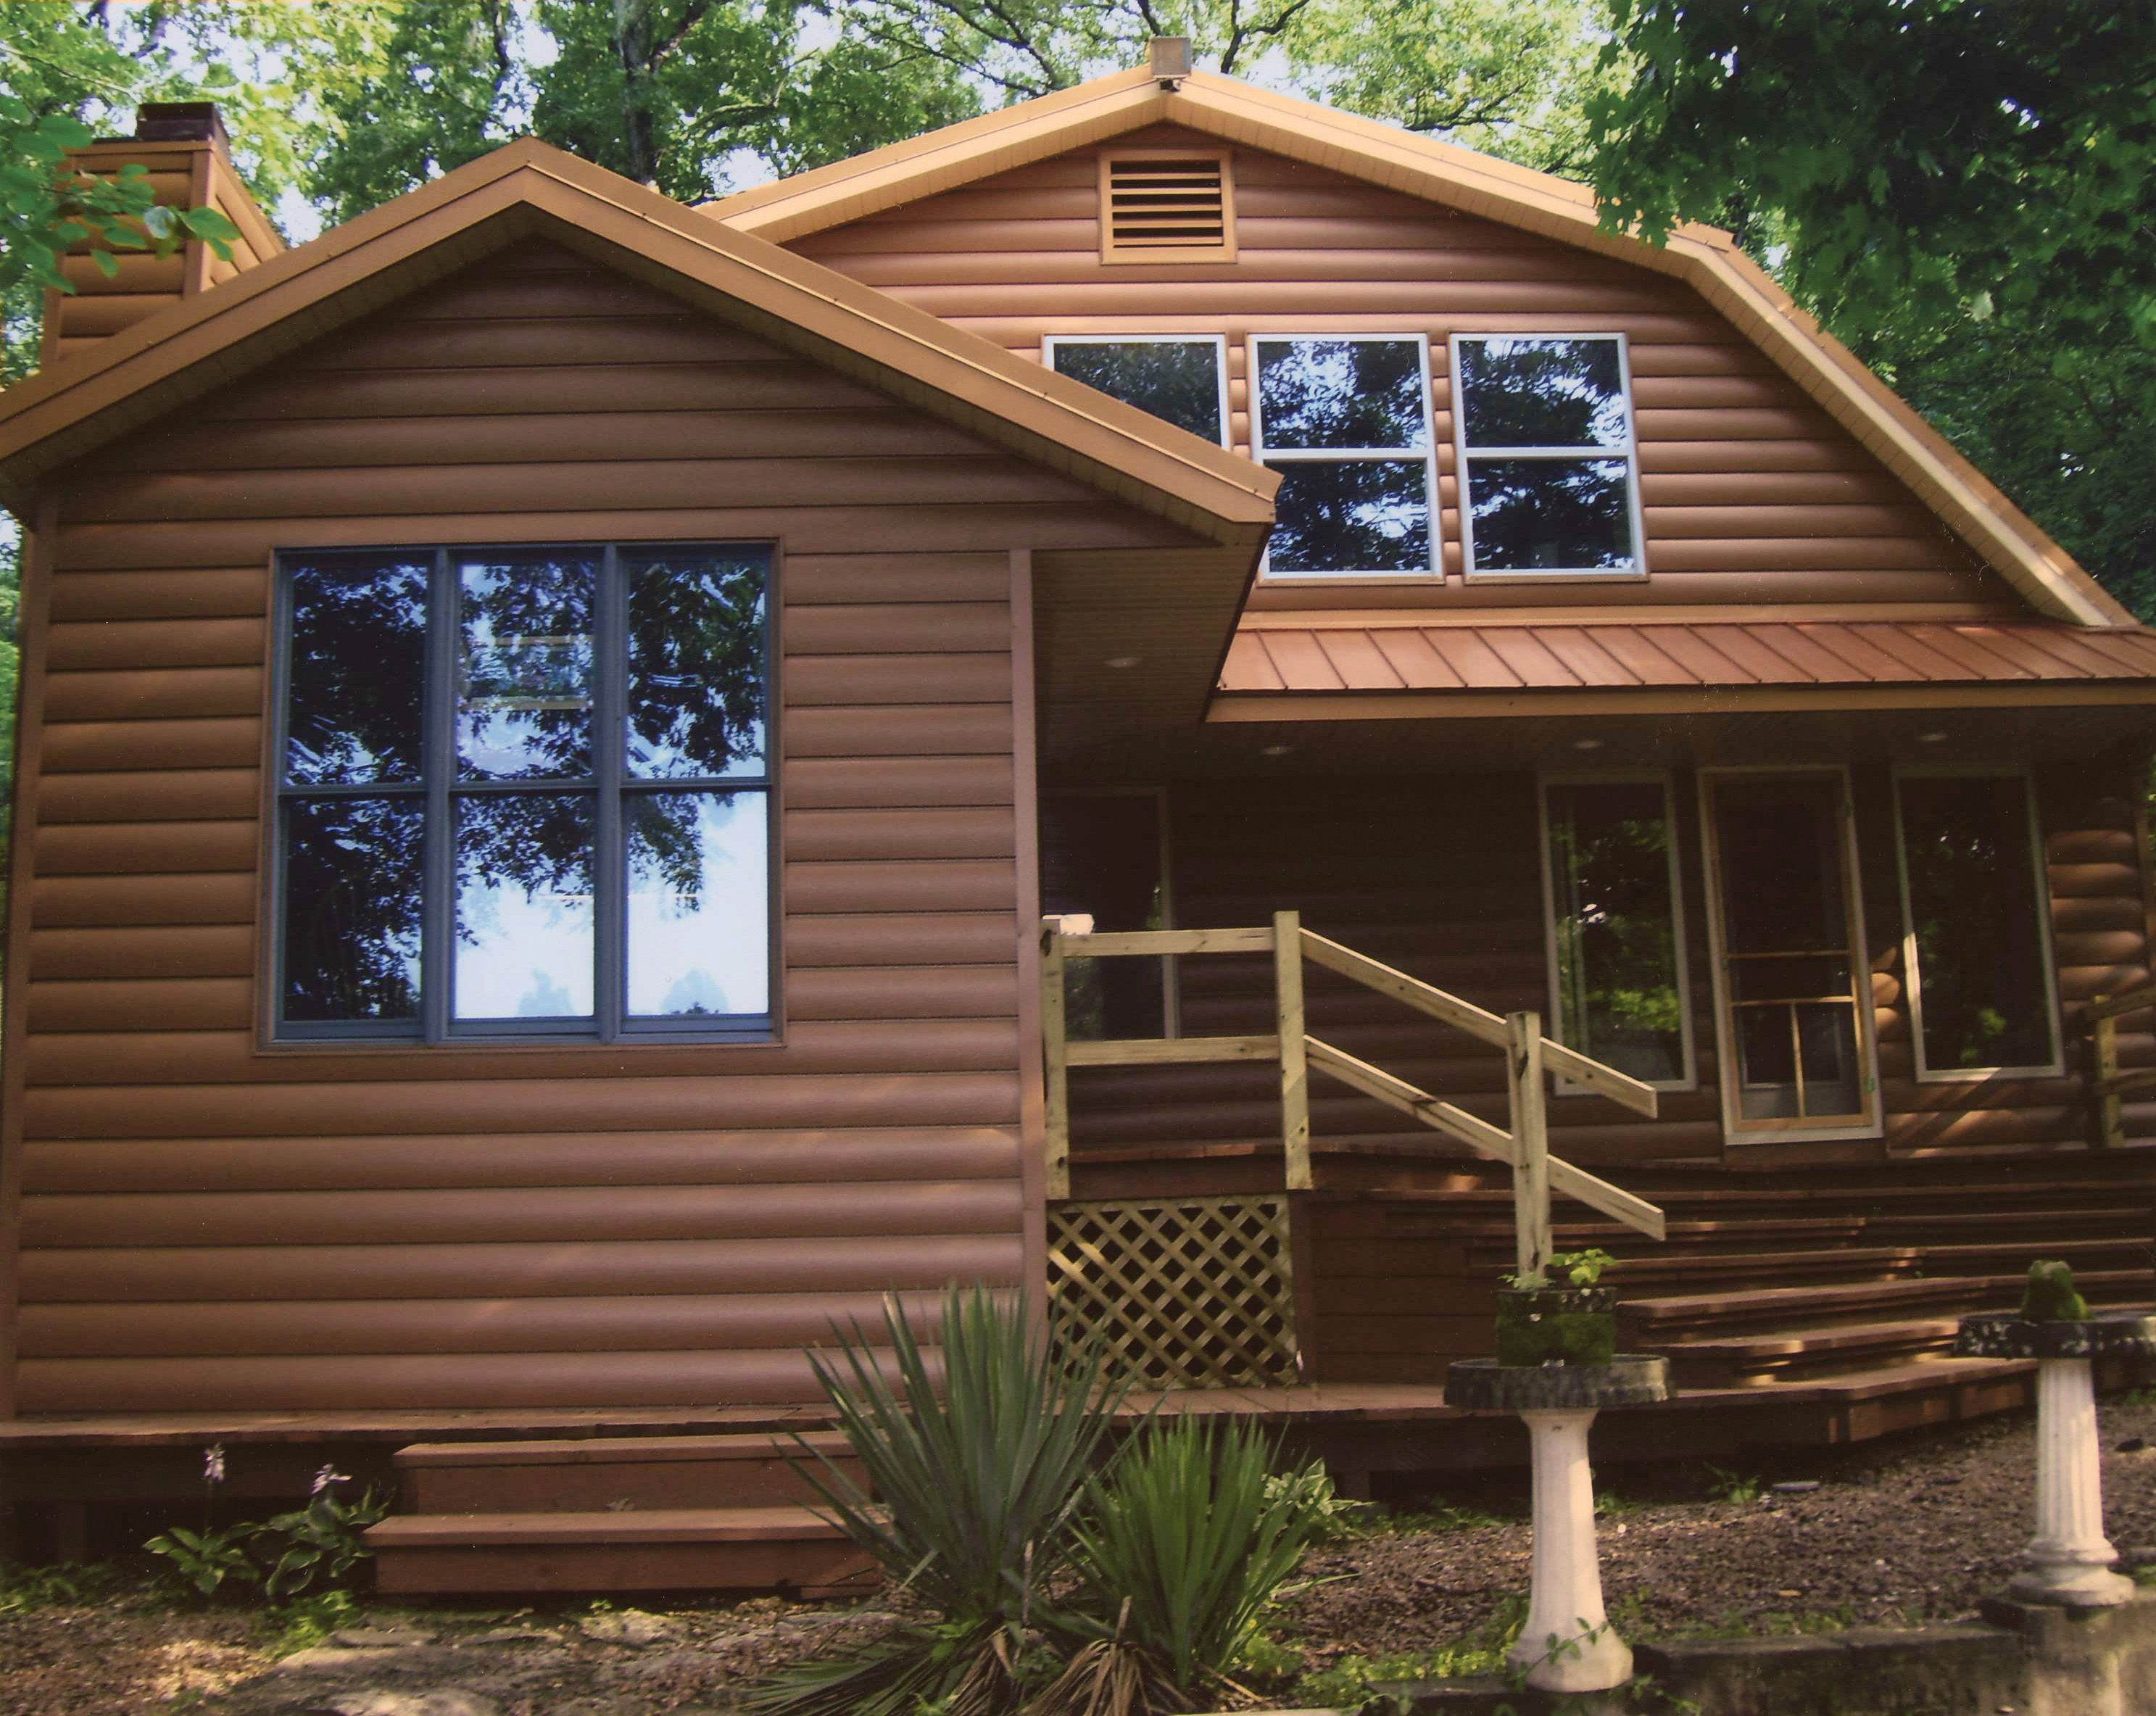 This brown steel siding has the look of genuine wood. You